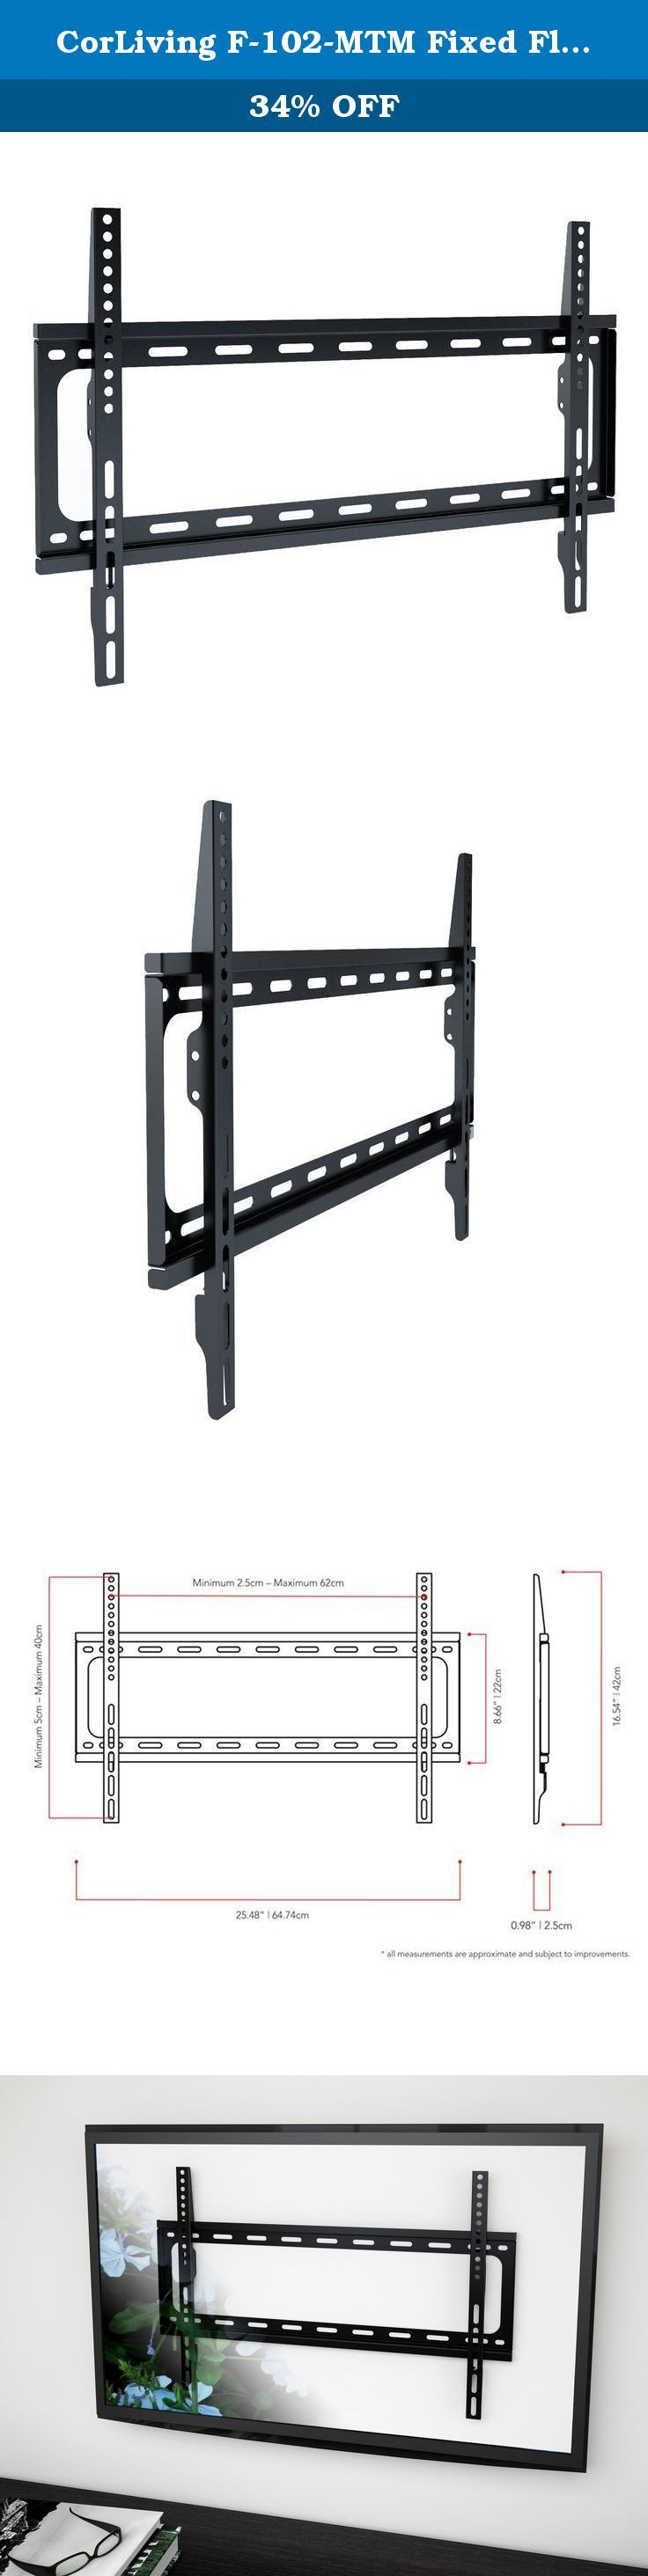 CorLiving F-102-MTM Fixed Flat Panel all Mount for TV, 32 to 55-Inch. Designed to accommodate most 32 – 55 Inch TVs up to 77lbs, this flat panel wall mount elevates your TV to the optimal viewing angle. With a close 1 inch fit the F-102-MPM lets your TV hug the wall for a sleek modern look. The universal design of this mount covers most VESA mounting patterns up to 600x400. The convenient open frame design allows for easy installation without having to work around a wall plate.